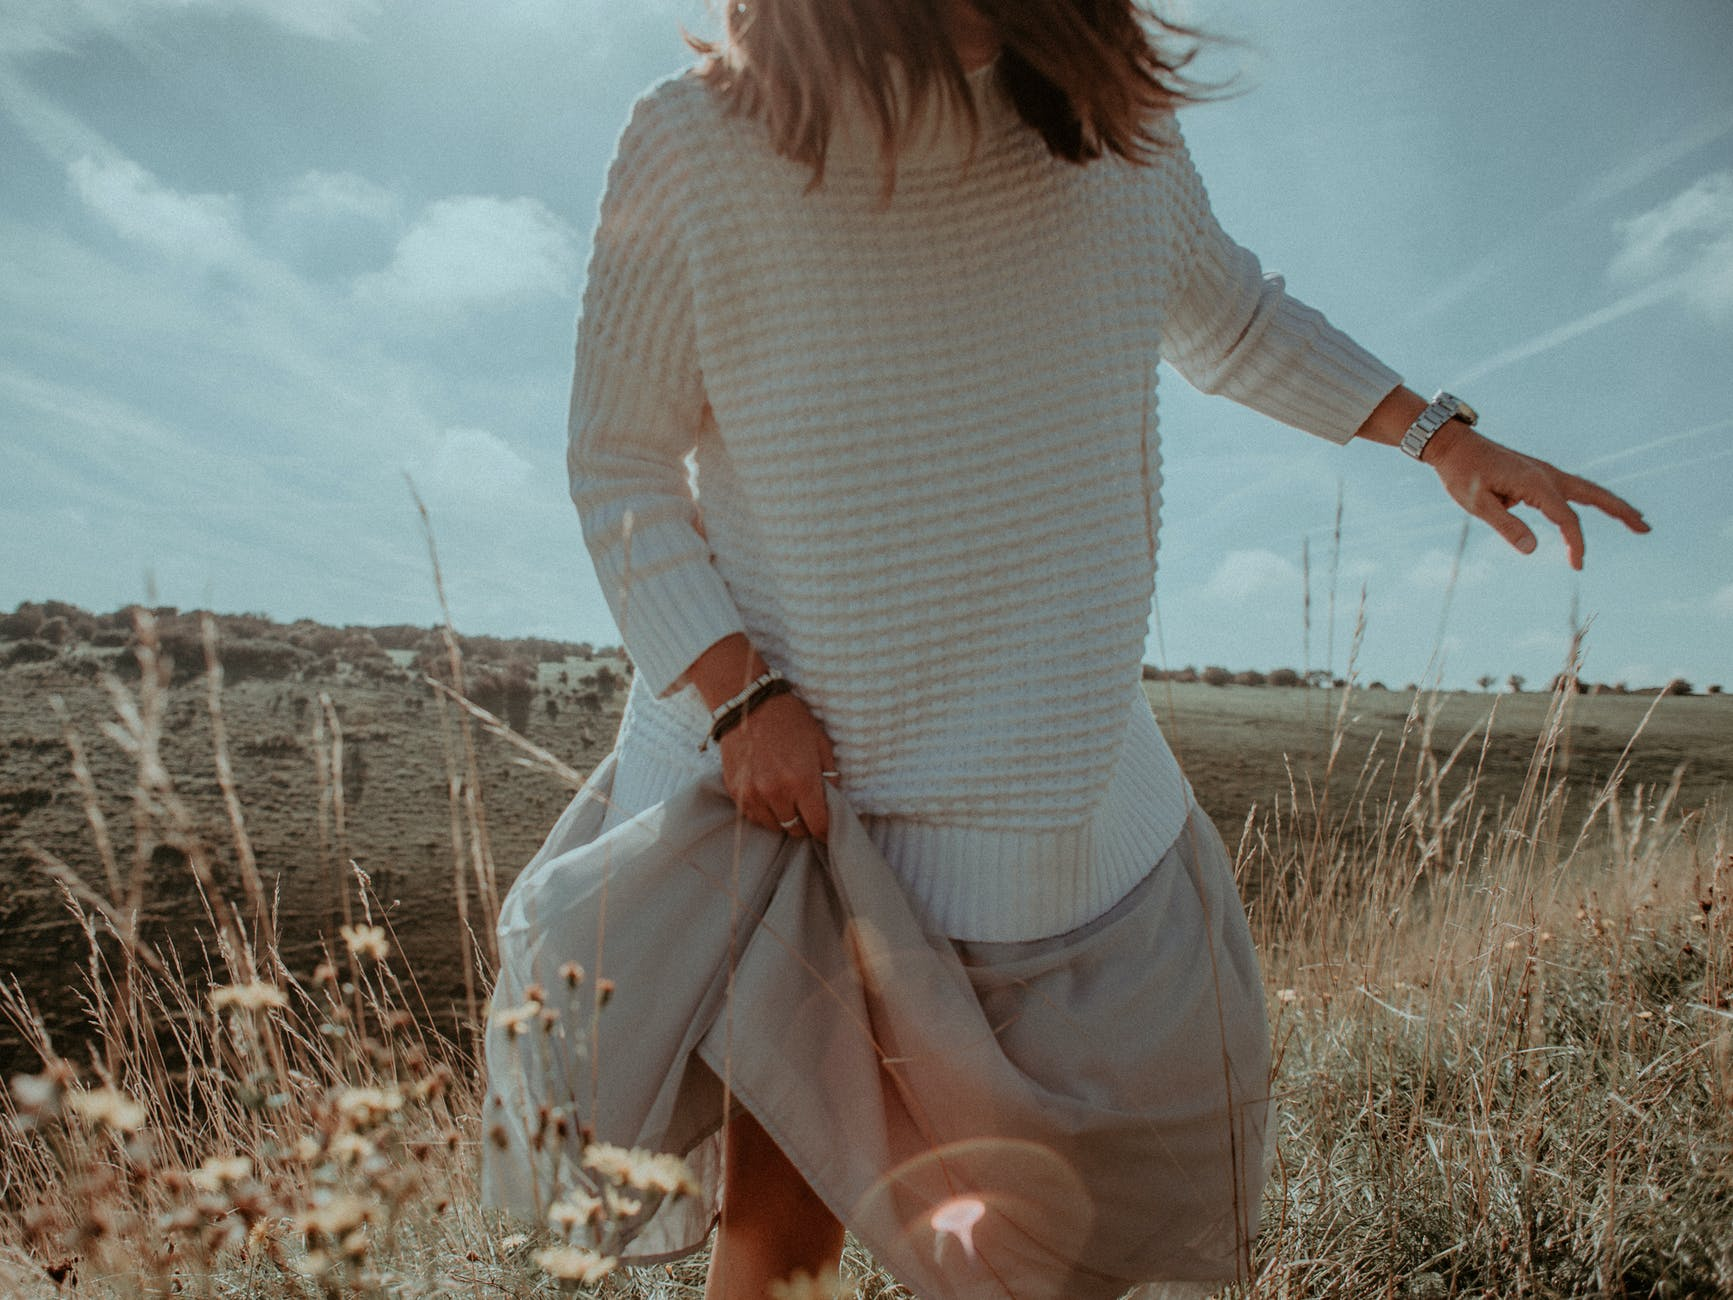 woman wearing white sweater and beige skirt